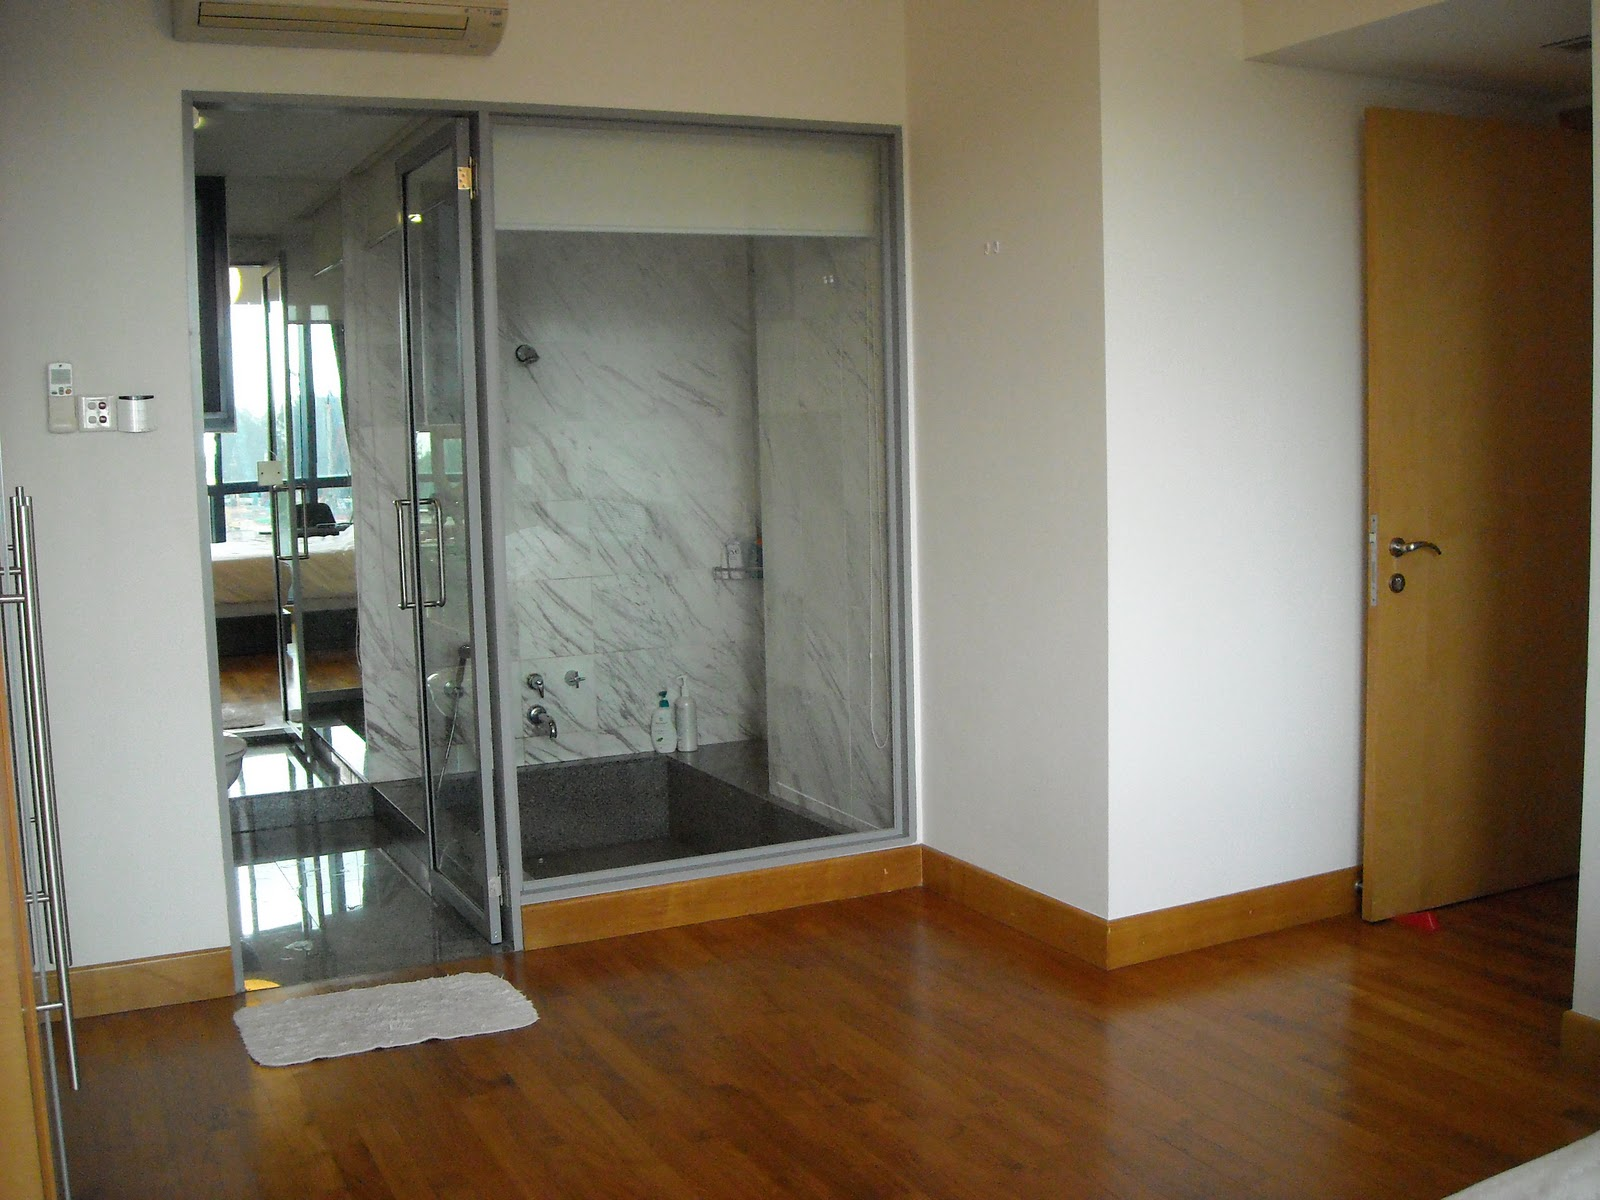 Hot singapore properties alternative investments and wellness business investor 39 s choice Master bedroom with ensuite